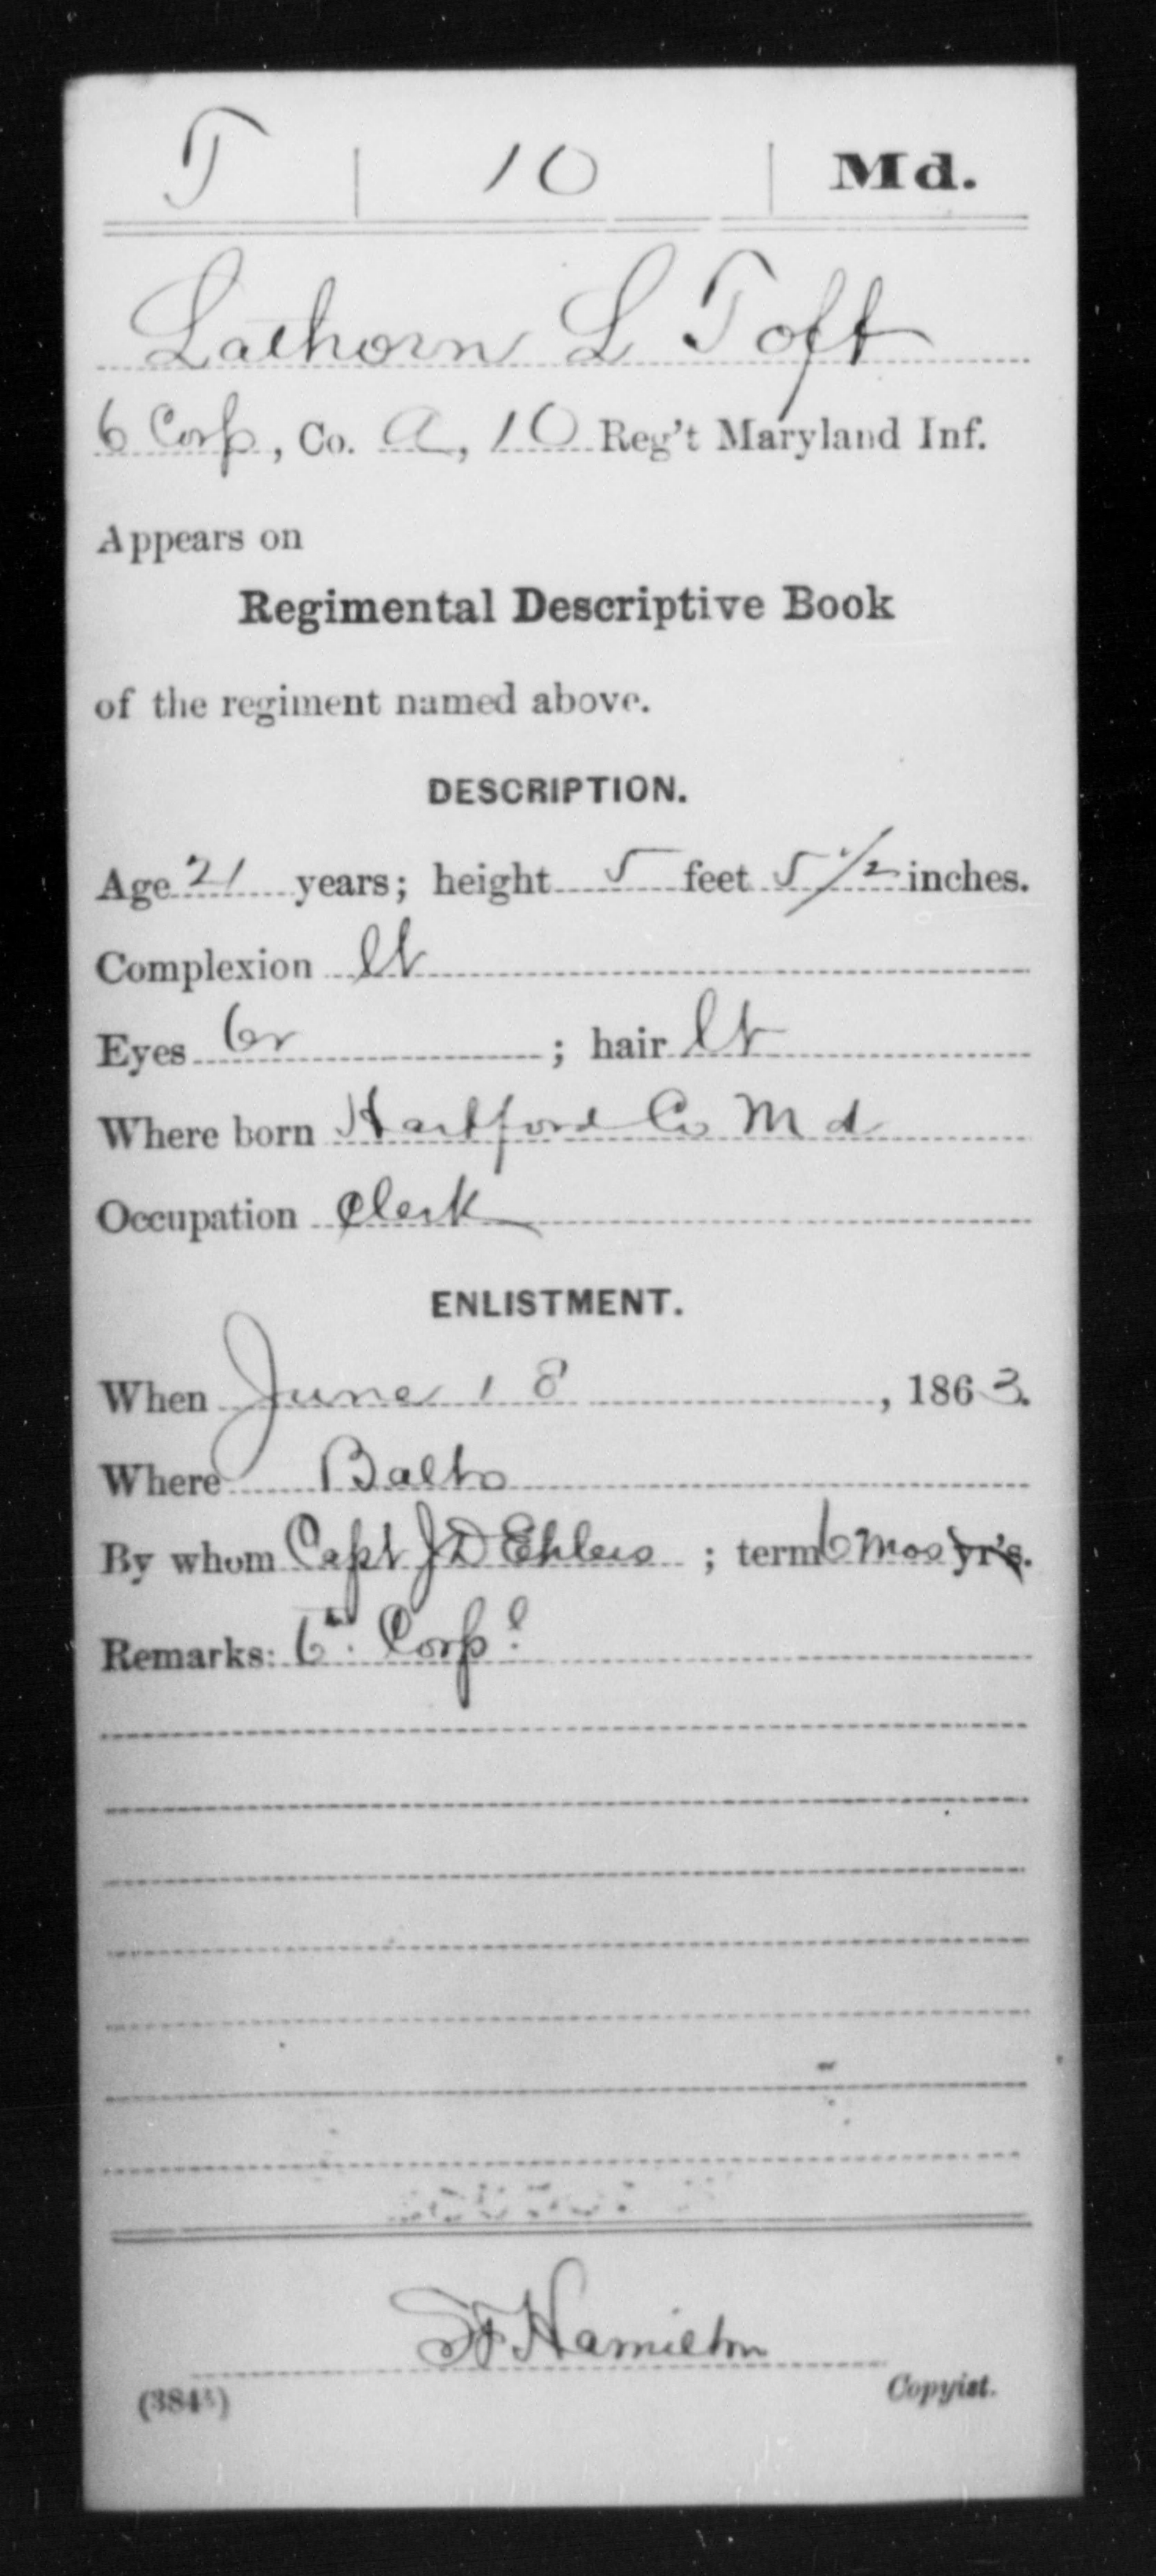 [Maryland] Toft, Lathorn L - Age 21, Year: 1863 - Miscellaneous Card Abstracts of Records